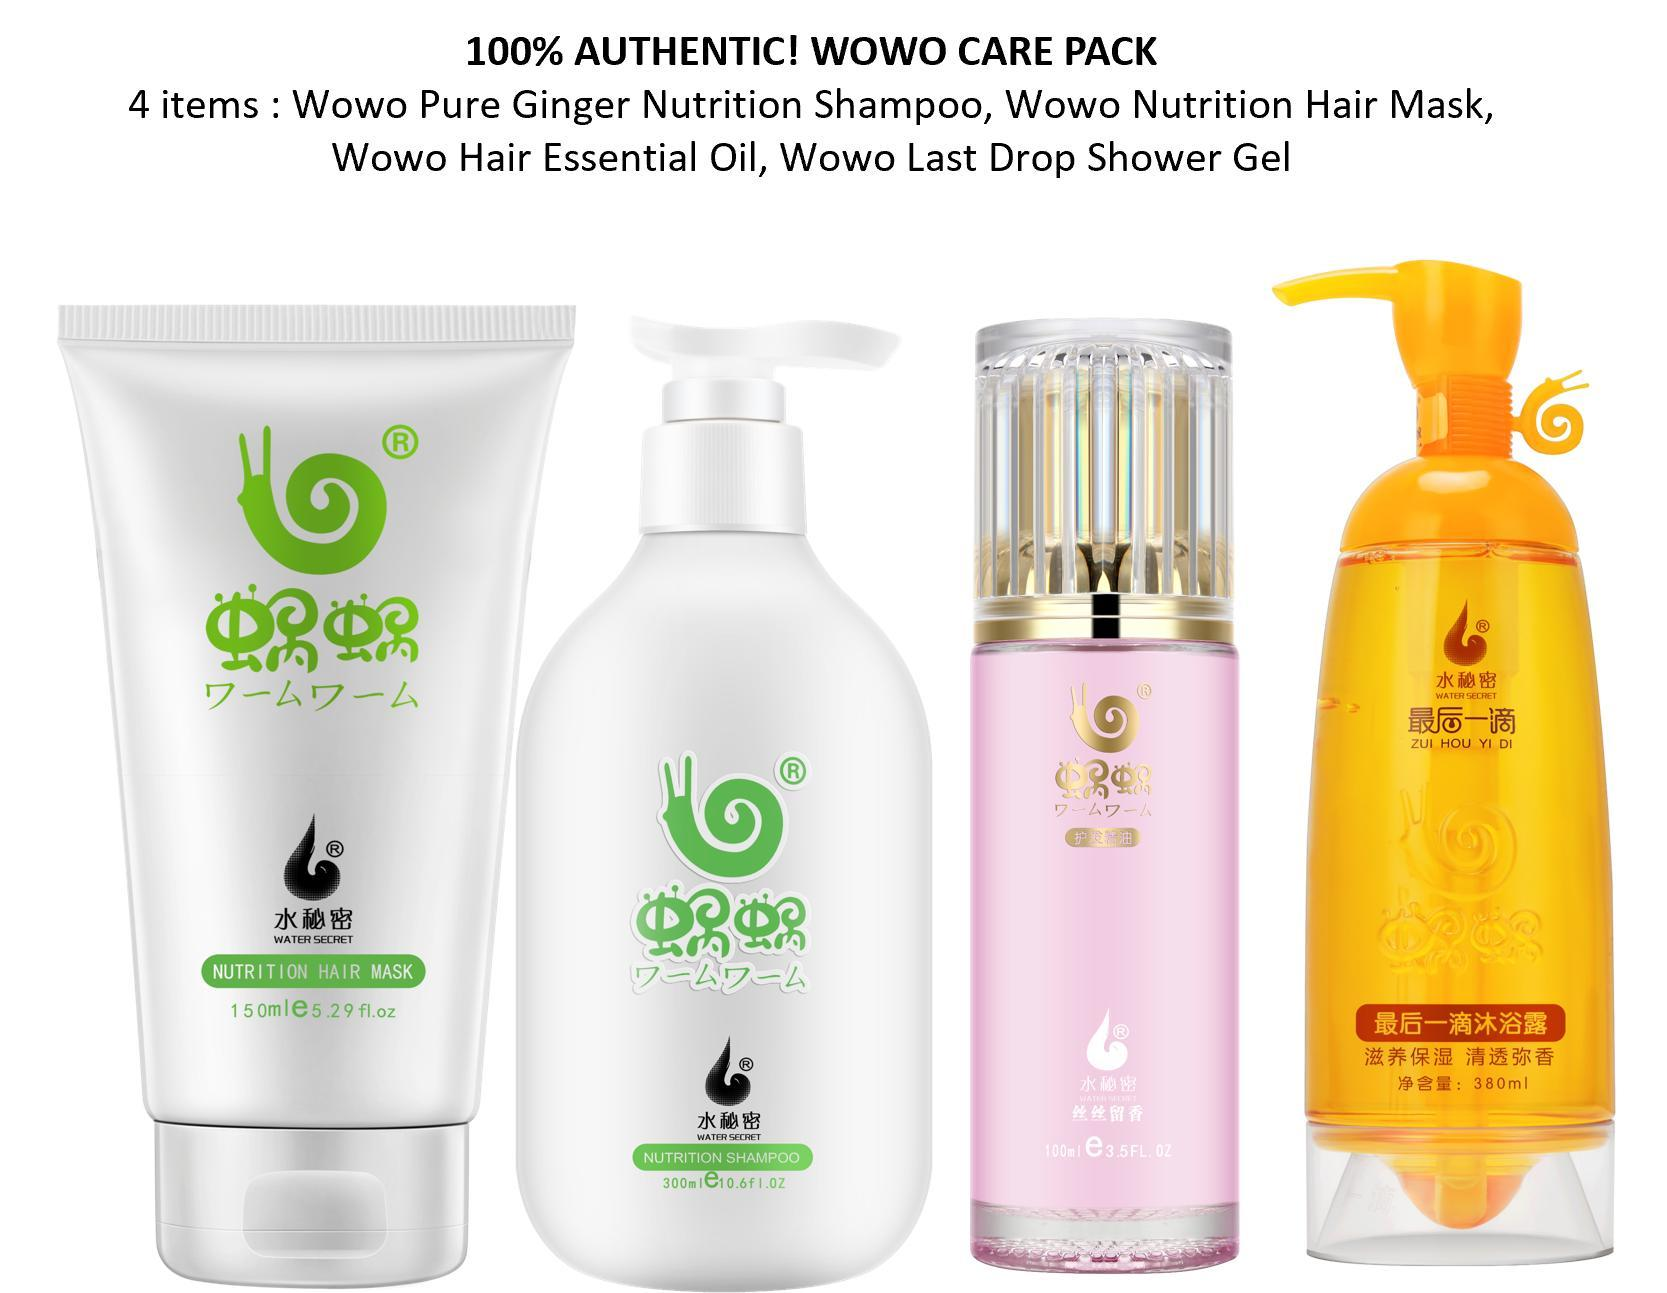 Wowo Products Set Of 4 (shampoo, Hair Mask, Essential Oil, Drop Shower Gel) ♥ 100% Authentic! By Oilyfriends.